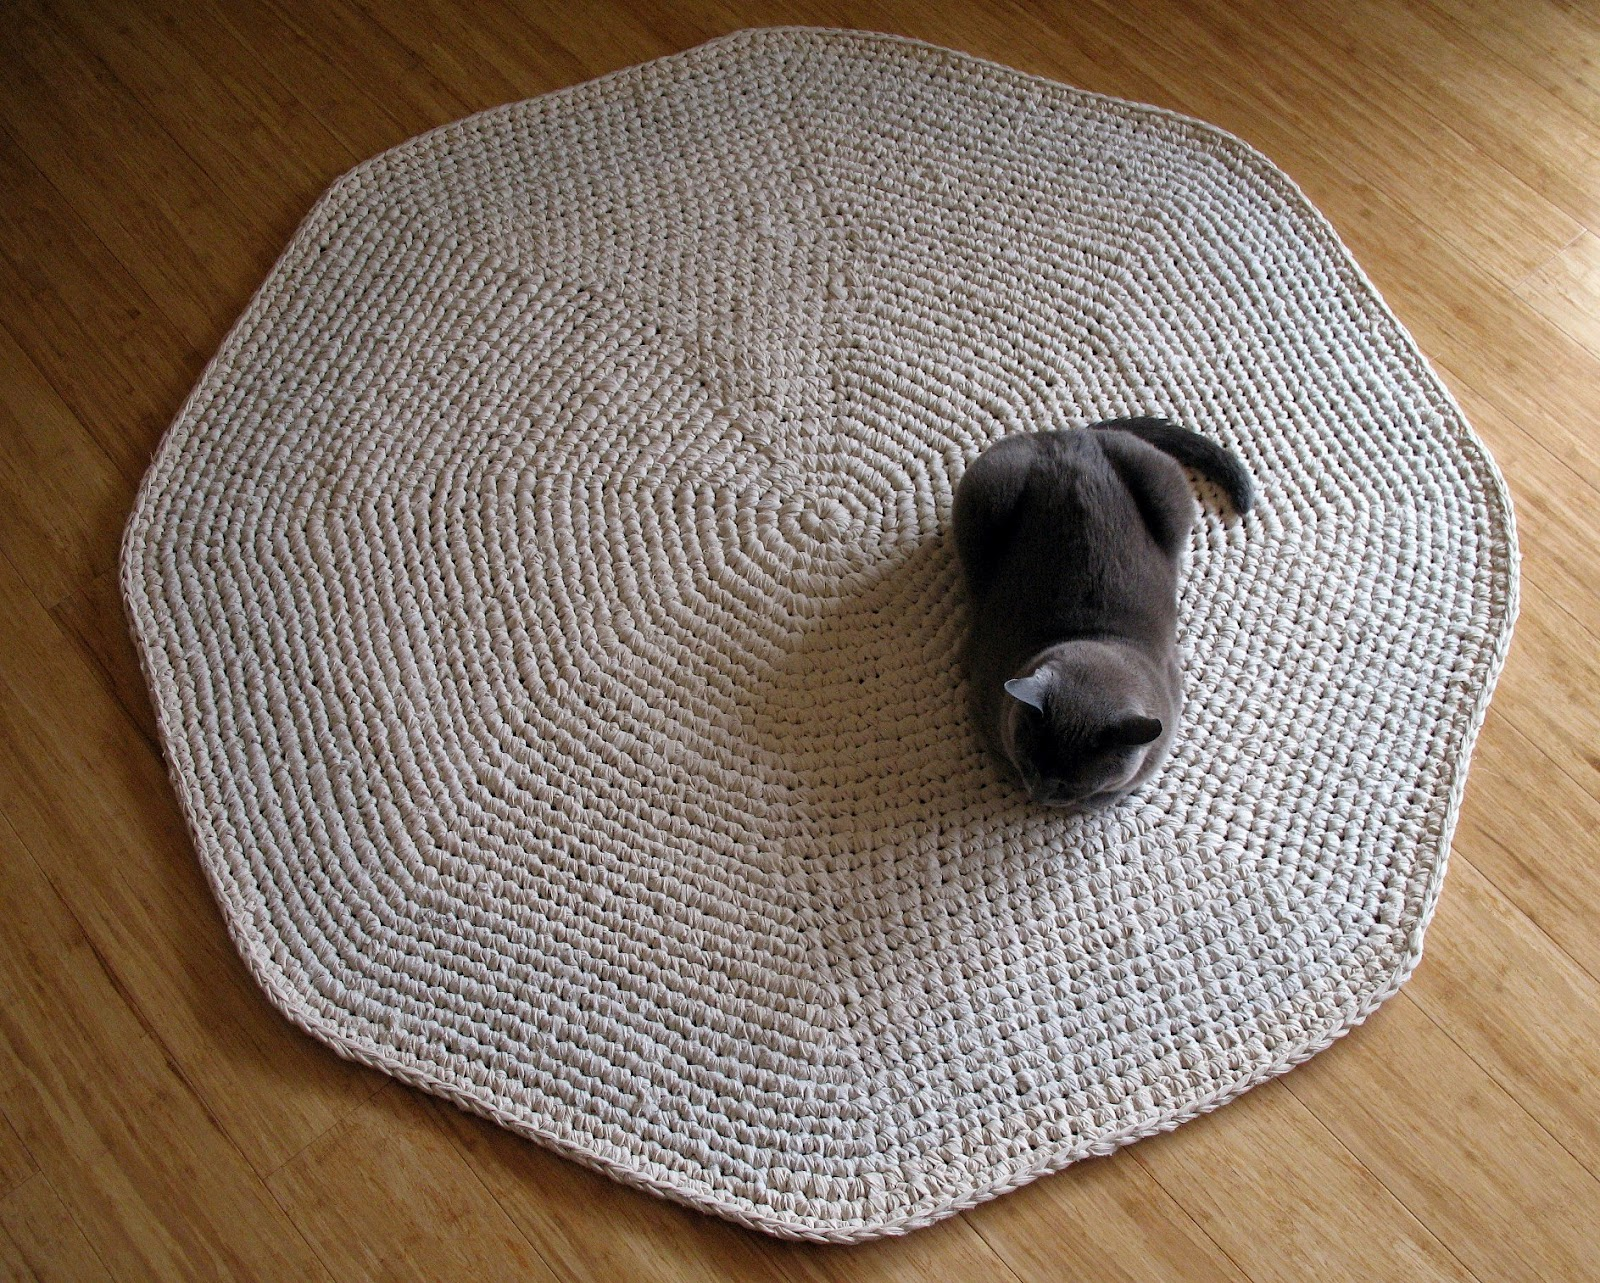 Crochet Rug Patterns : eclectic me: Calico Crochet Rug & Pattern.....